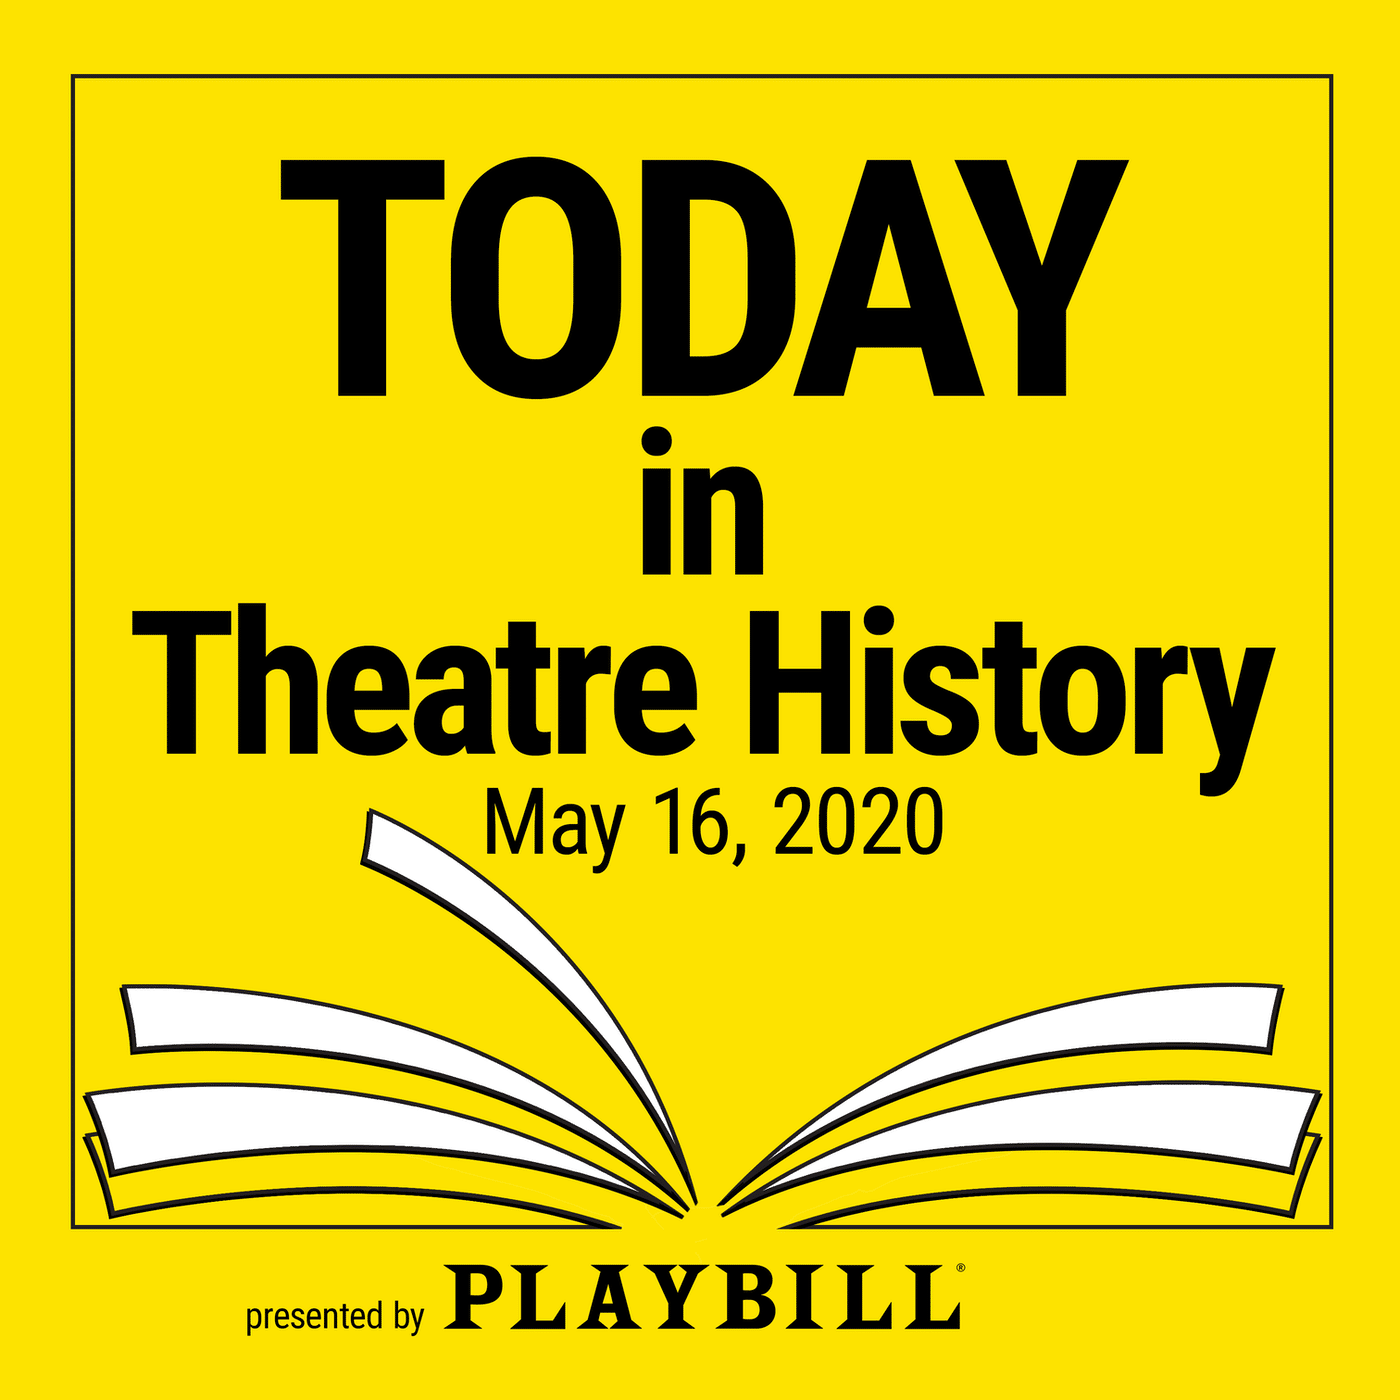 Today in Theatre History, May 16 2020